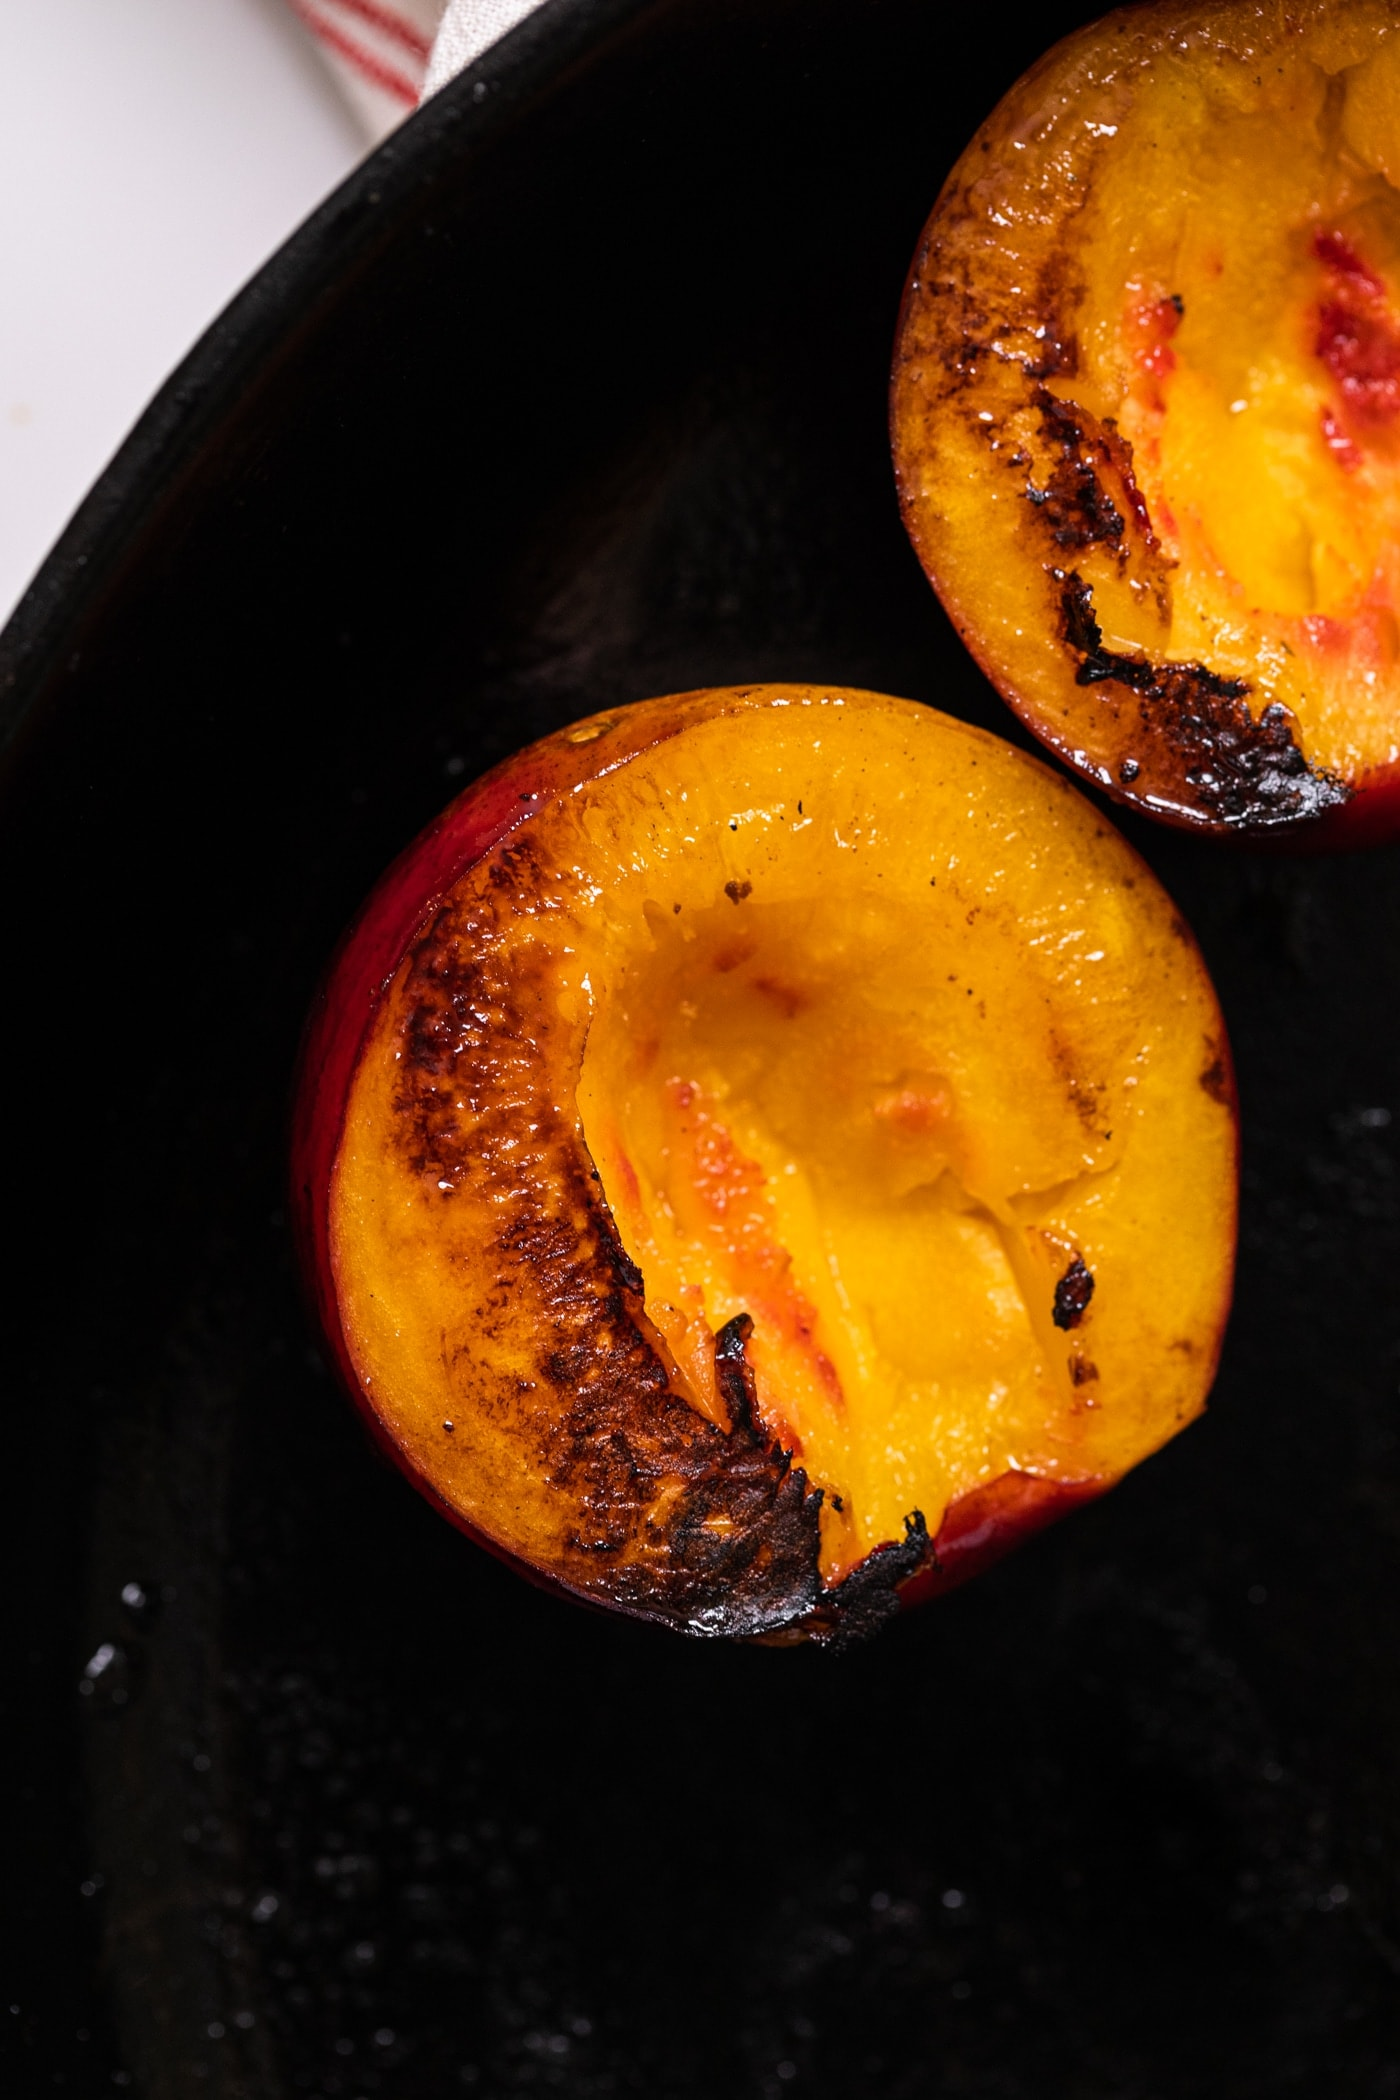 Top down view of grilled nectarine sitting in black cast iron skillet